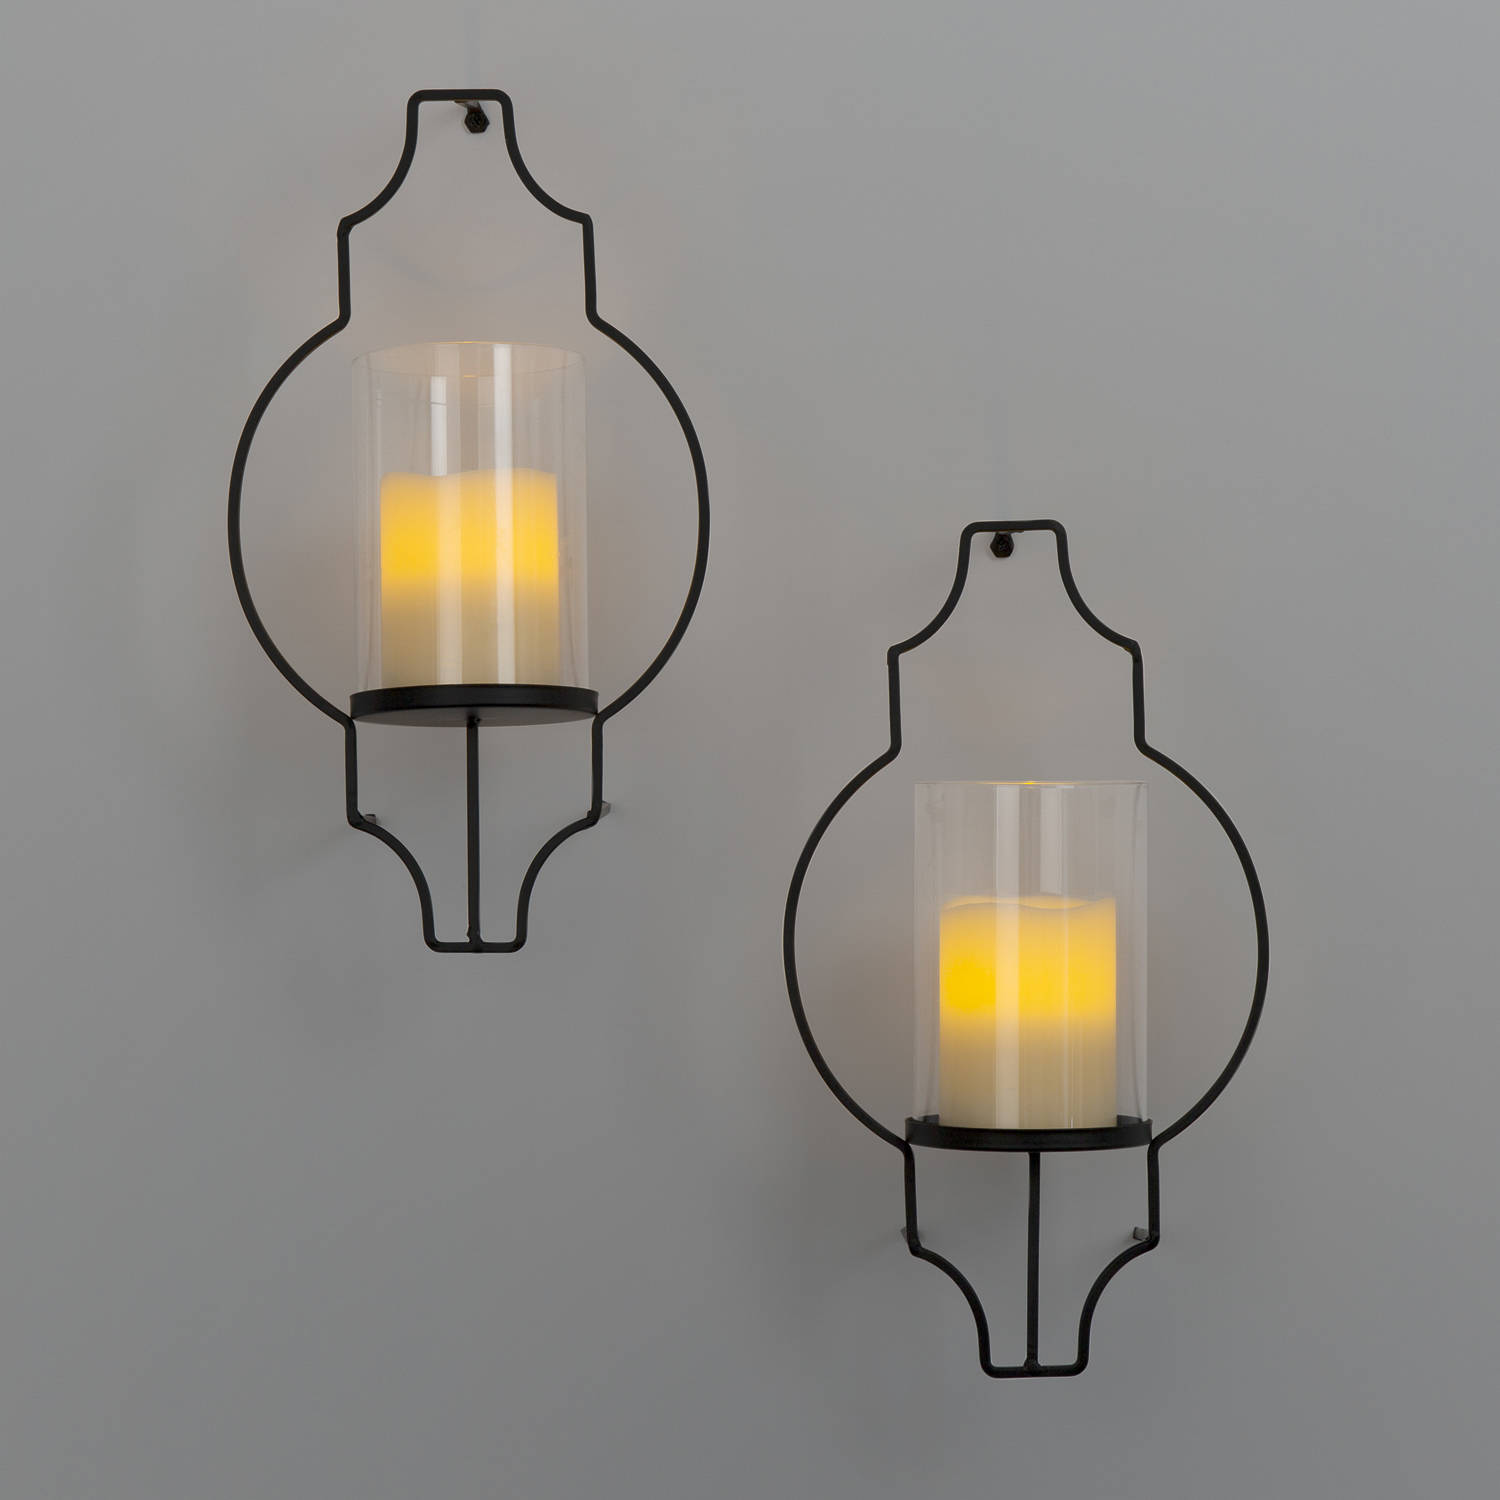 Wall Sconces With Flameless Candles : Lights.com Flameless Candles Pillar Candles Hurricane Glass Flameless Candle Wall Sconce ...